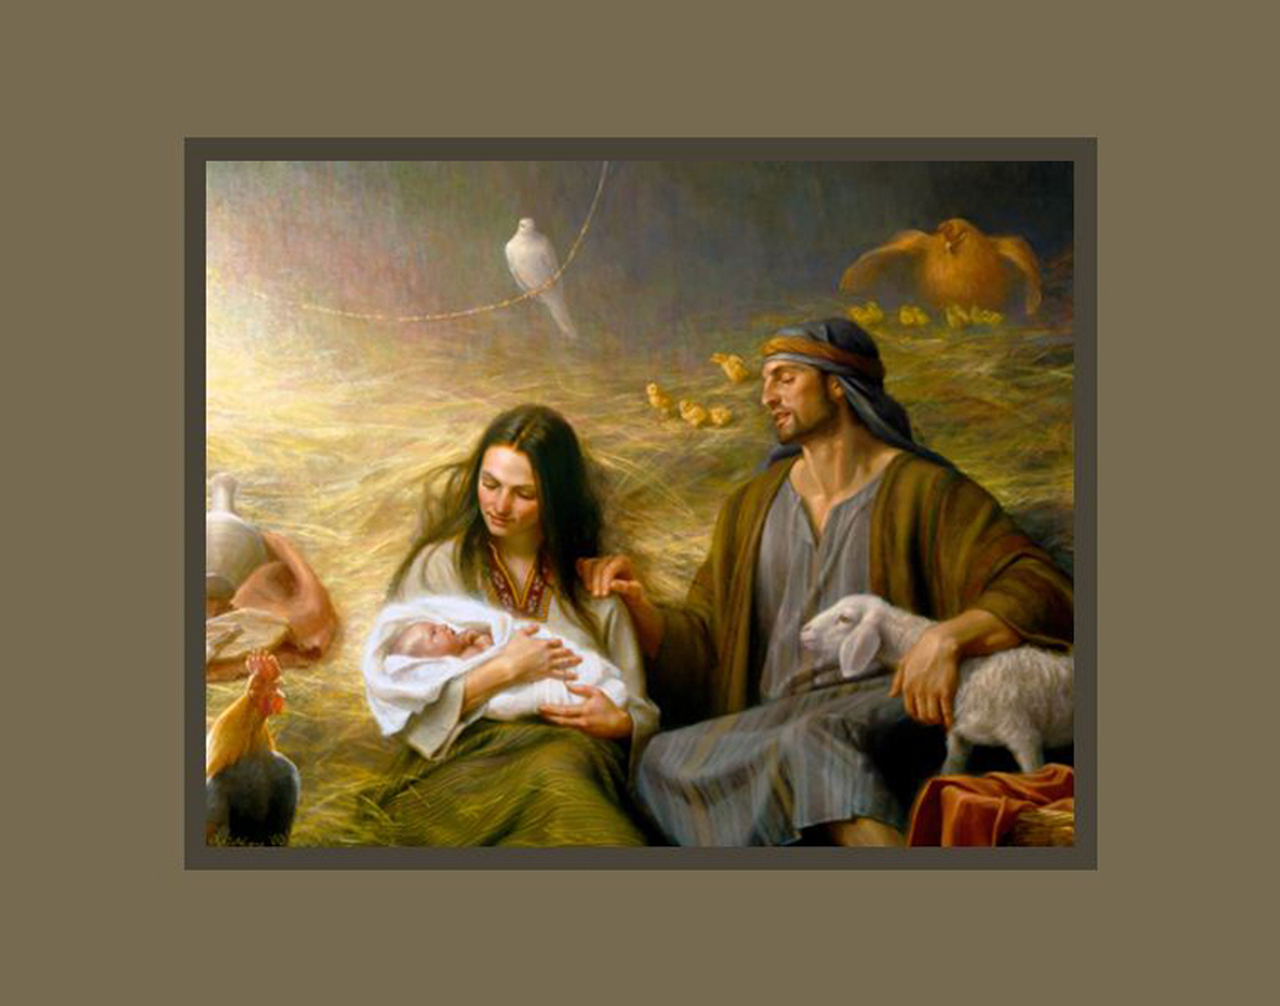 AF -11×14 Print - A Savior Is Born / 11x14 matted/Joseph Brickey<BR>救い主の生誕 11×14 マットプリント